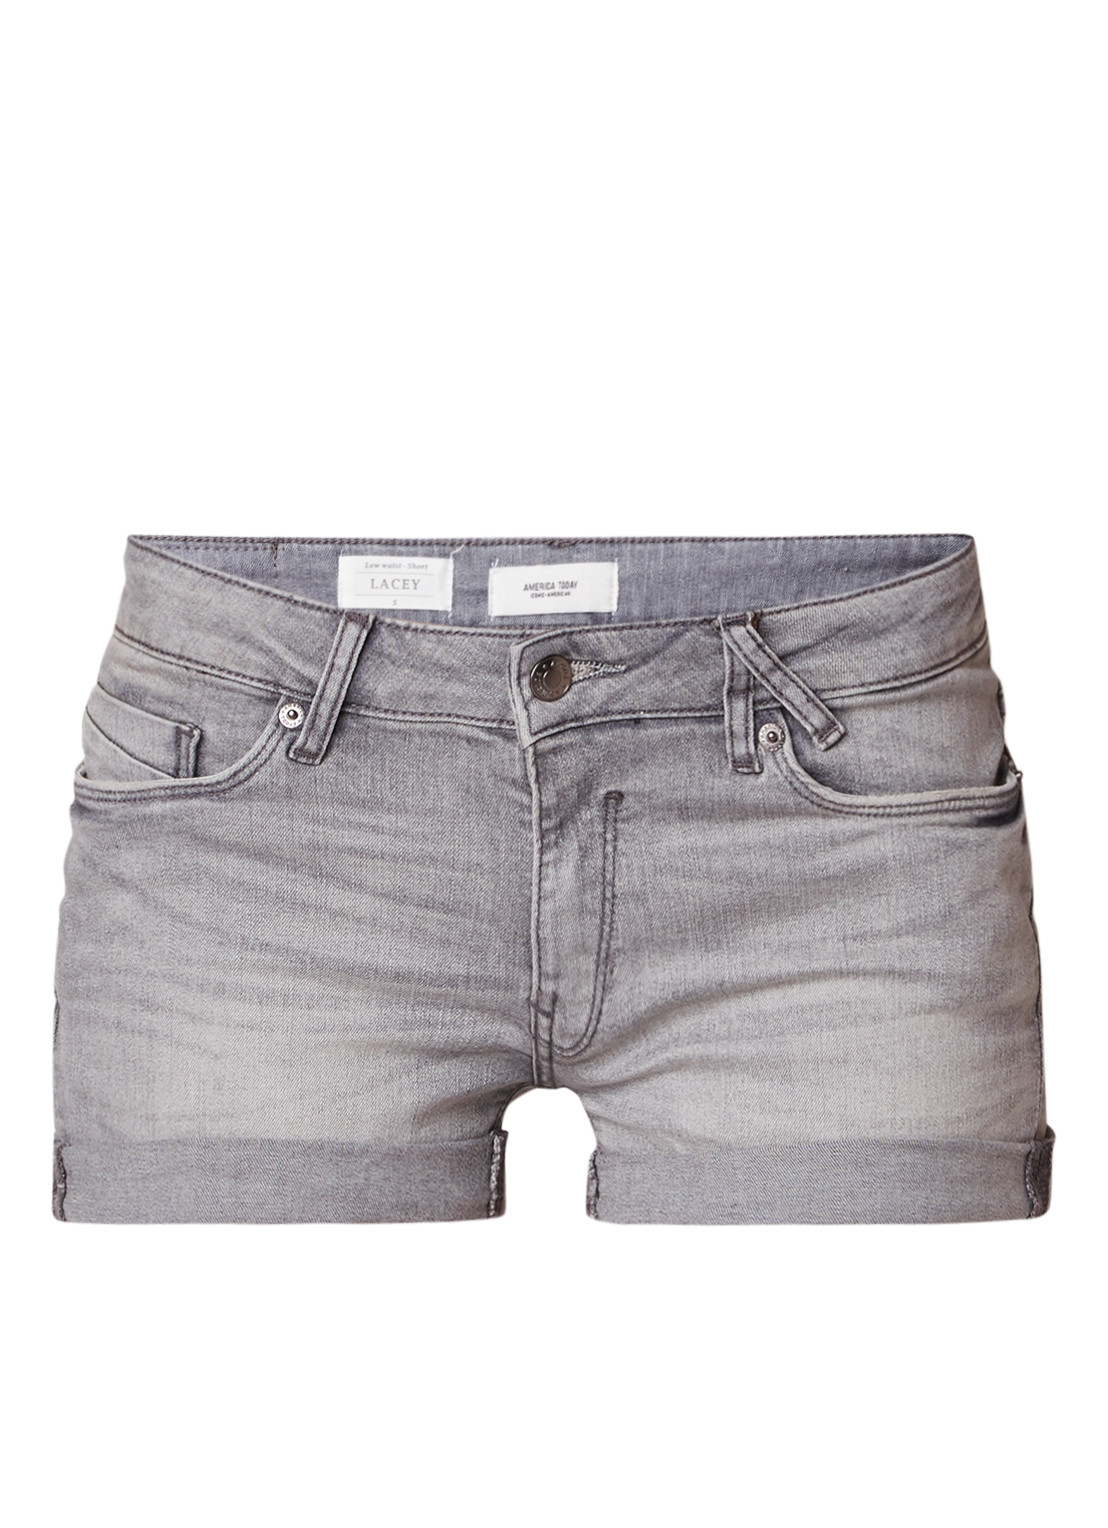 America Today America Today Lacey low waist denim shorts met omslag